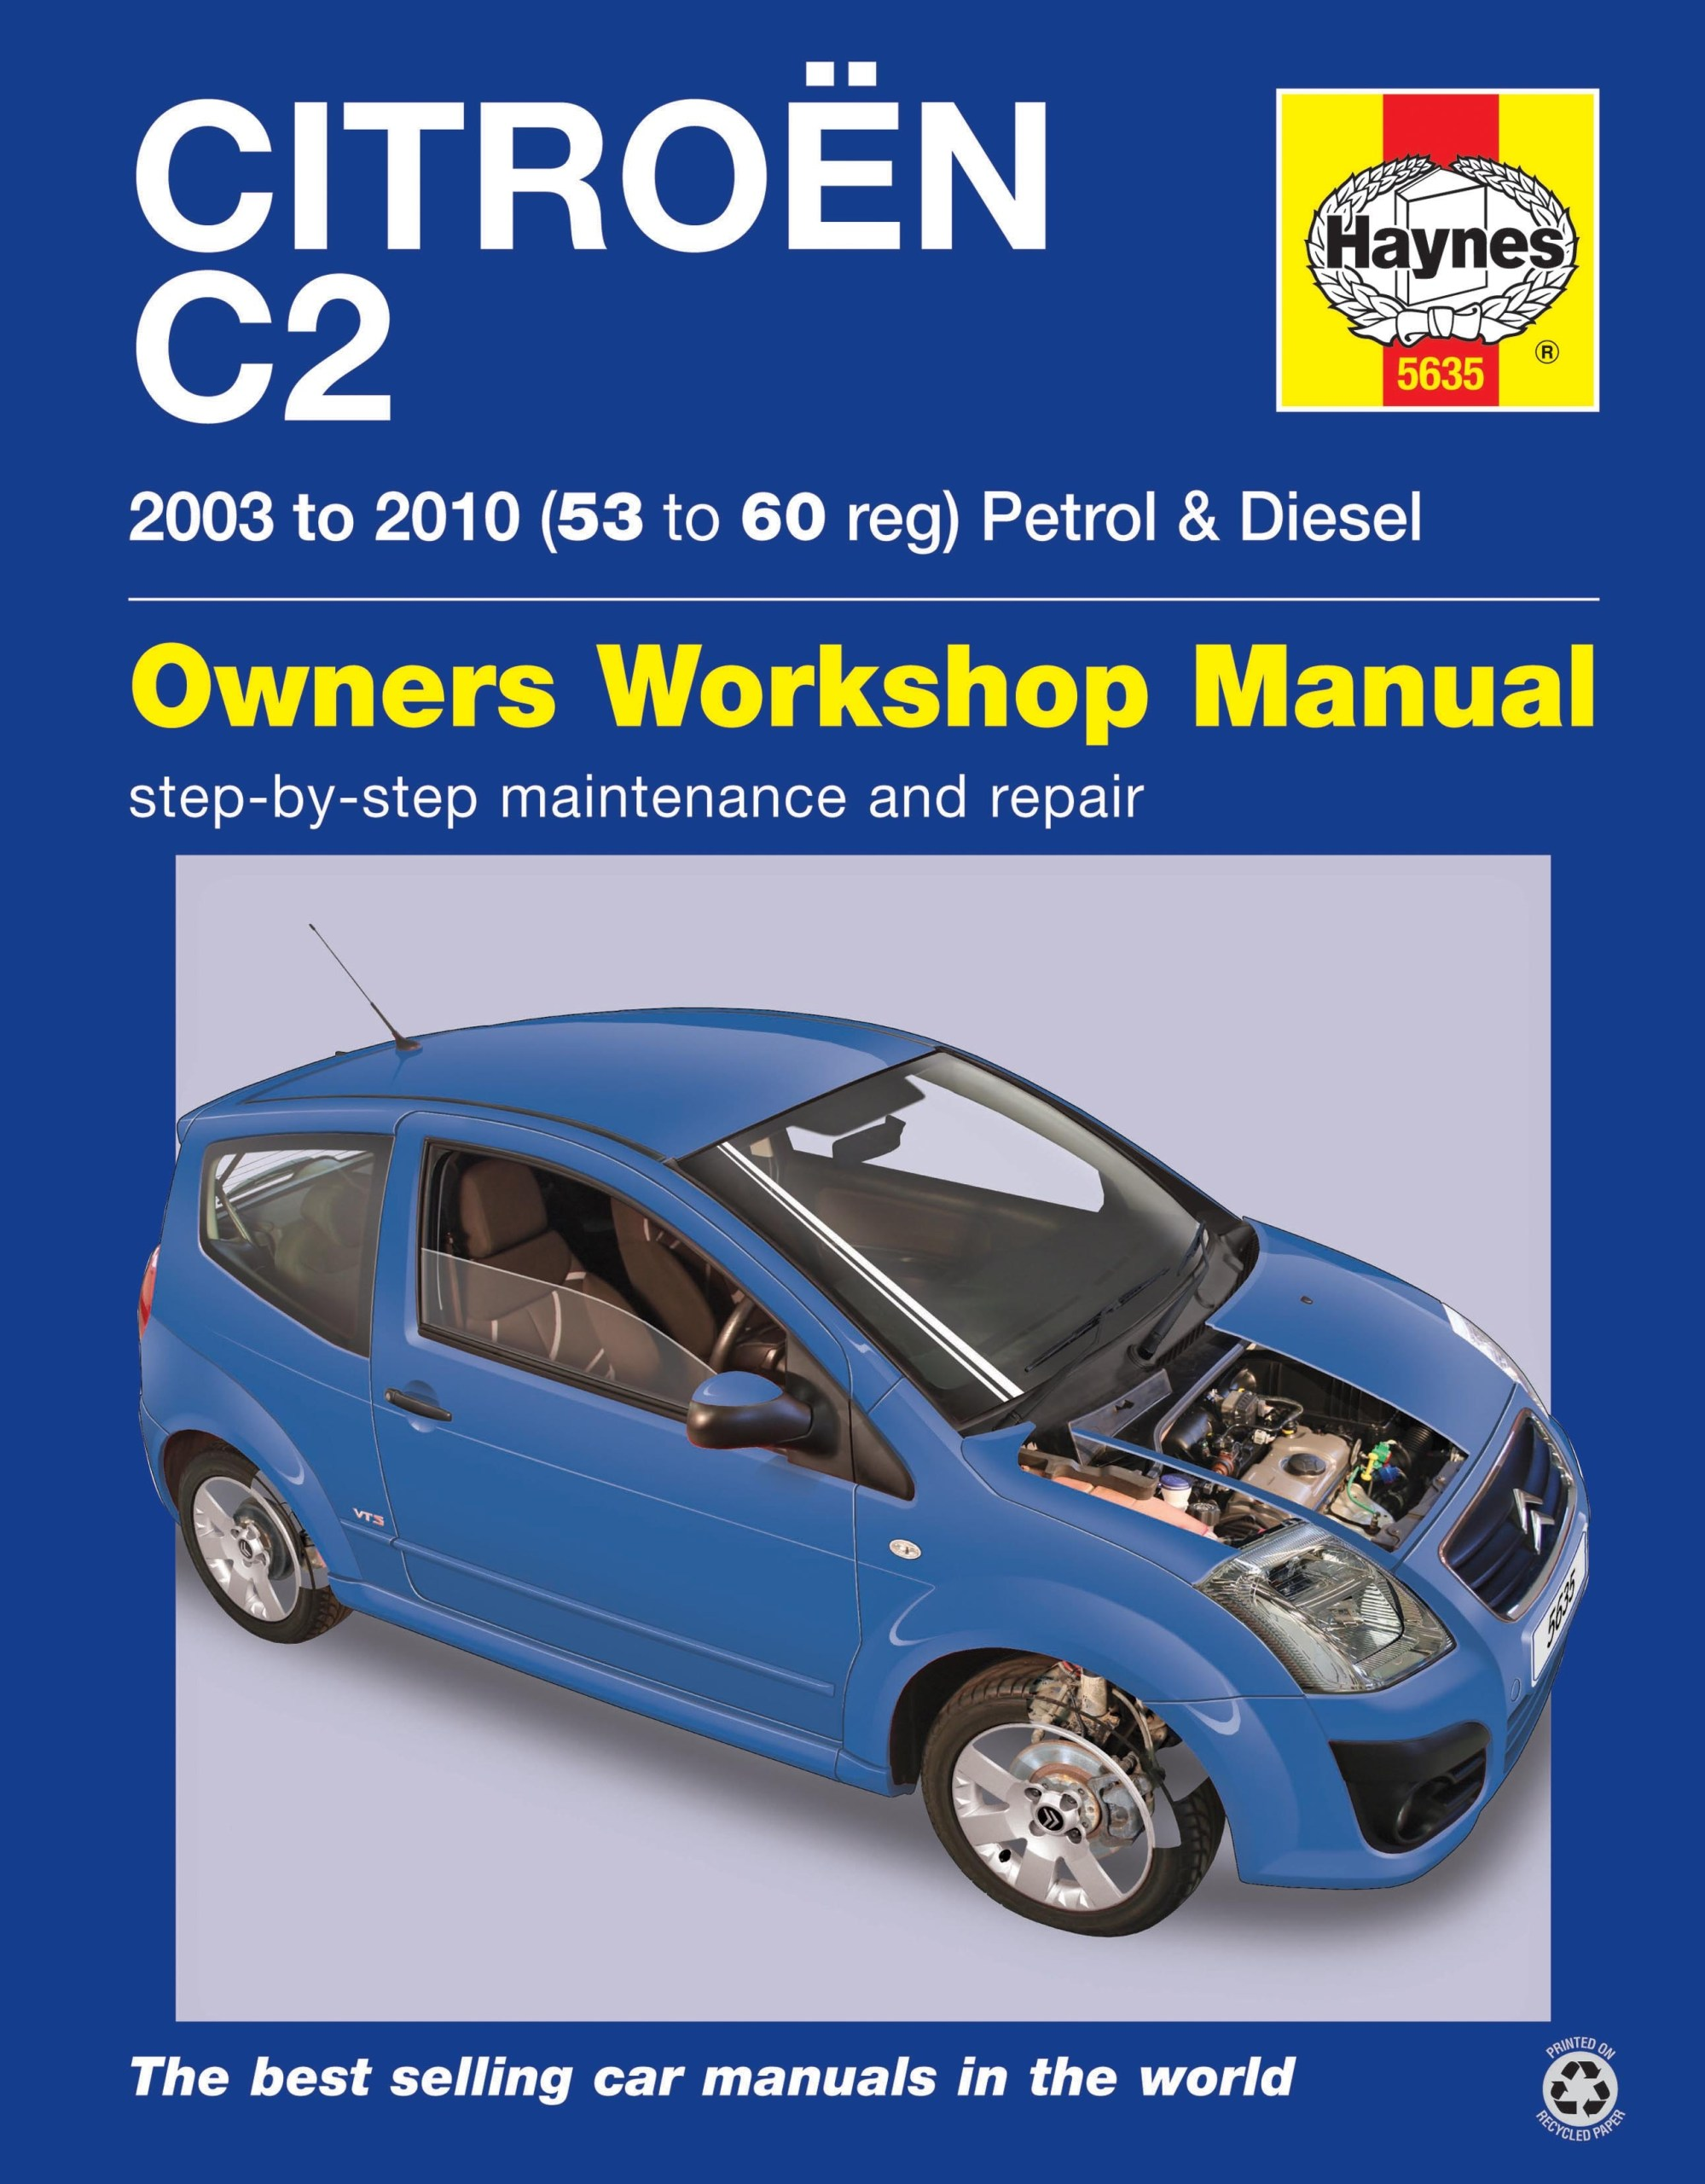 hight resolution of citroen c2 wiring diagram wiring library citroen c2 1 4 hdi wiring diagram